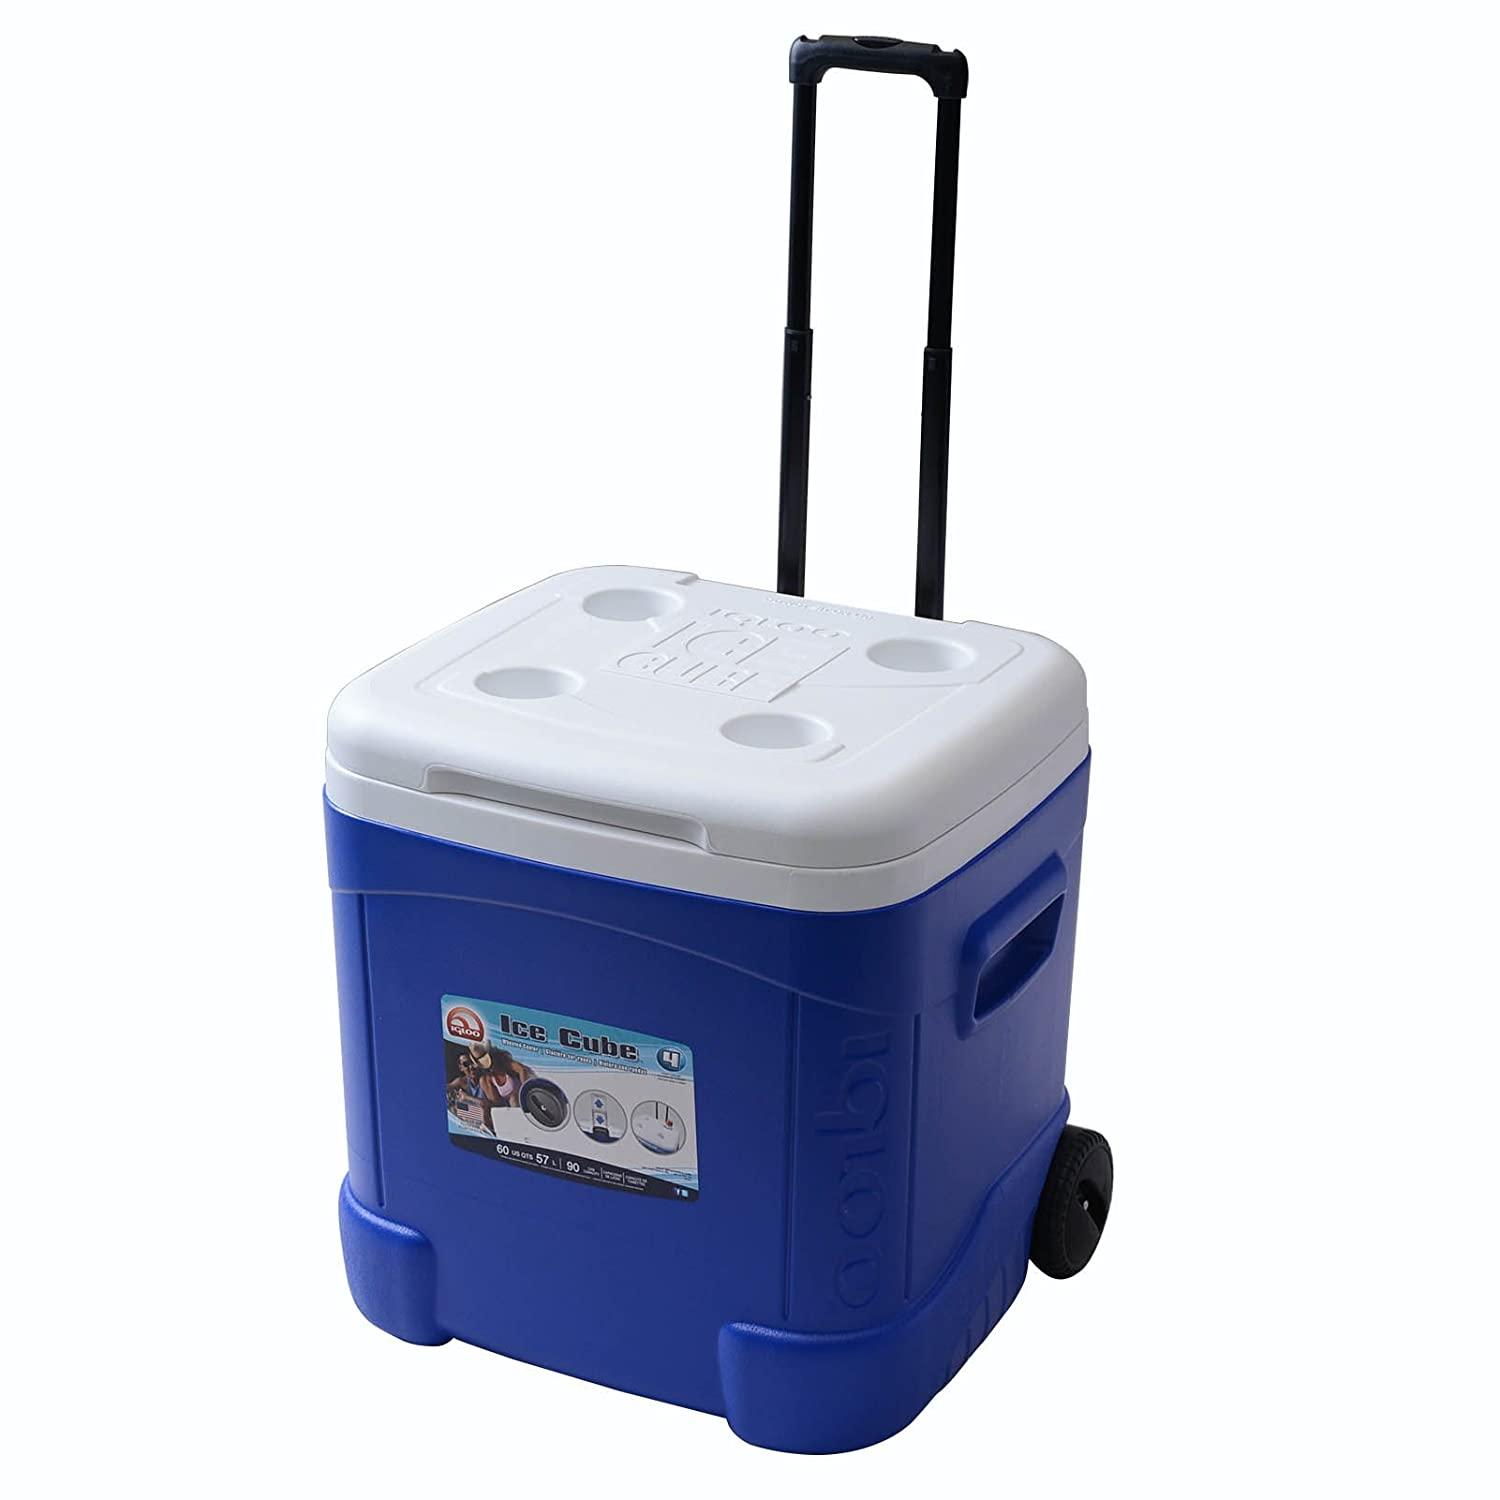 Igloo Ice Cube Roller Cooler (60-Quart, Ocean Blue)  Best Small Coolers